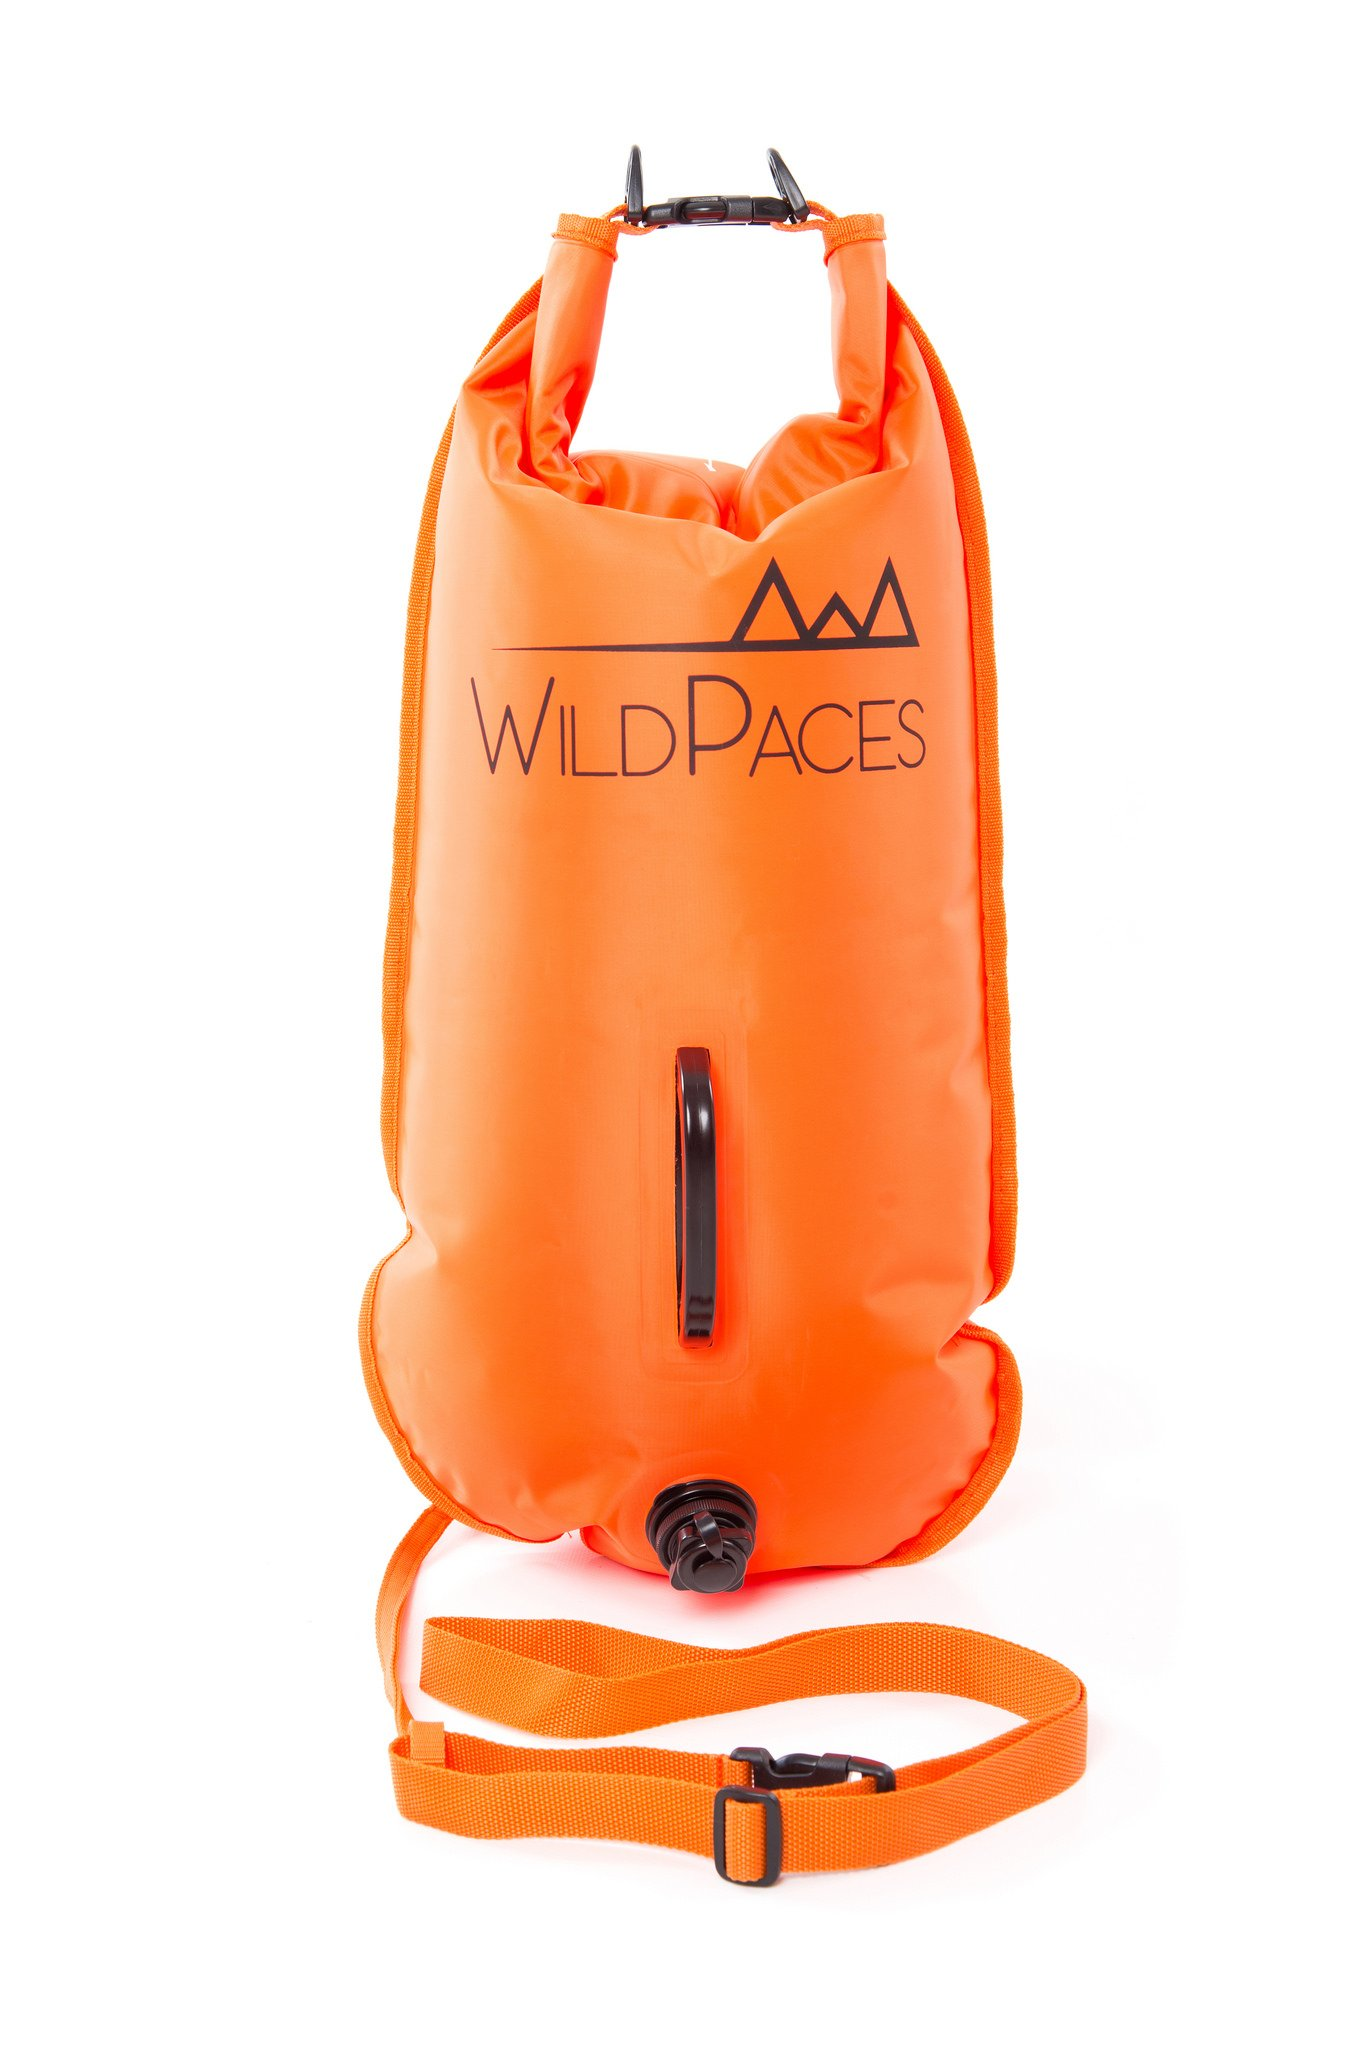 WildPaces 28L Swim Buoy Safety Tow Float High Visibility Inflatable Dry Bag Ideal for Wild Swimming Open Water SwimRun Cross Trail Training Kayaking Fishing Snorkelling Diving Adjustable Waist Belt